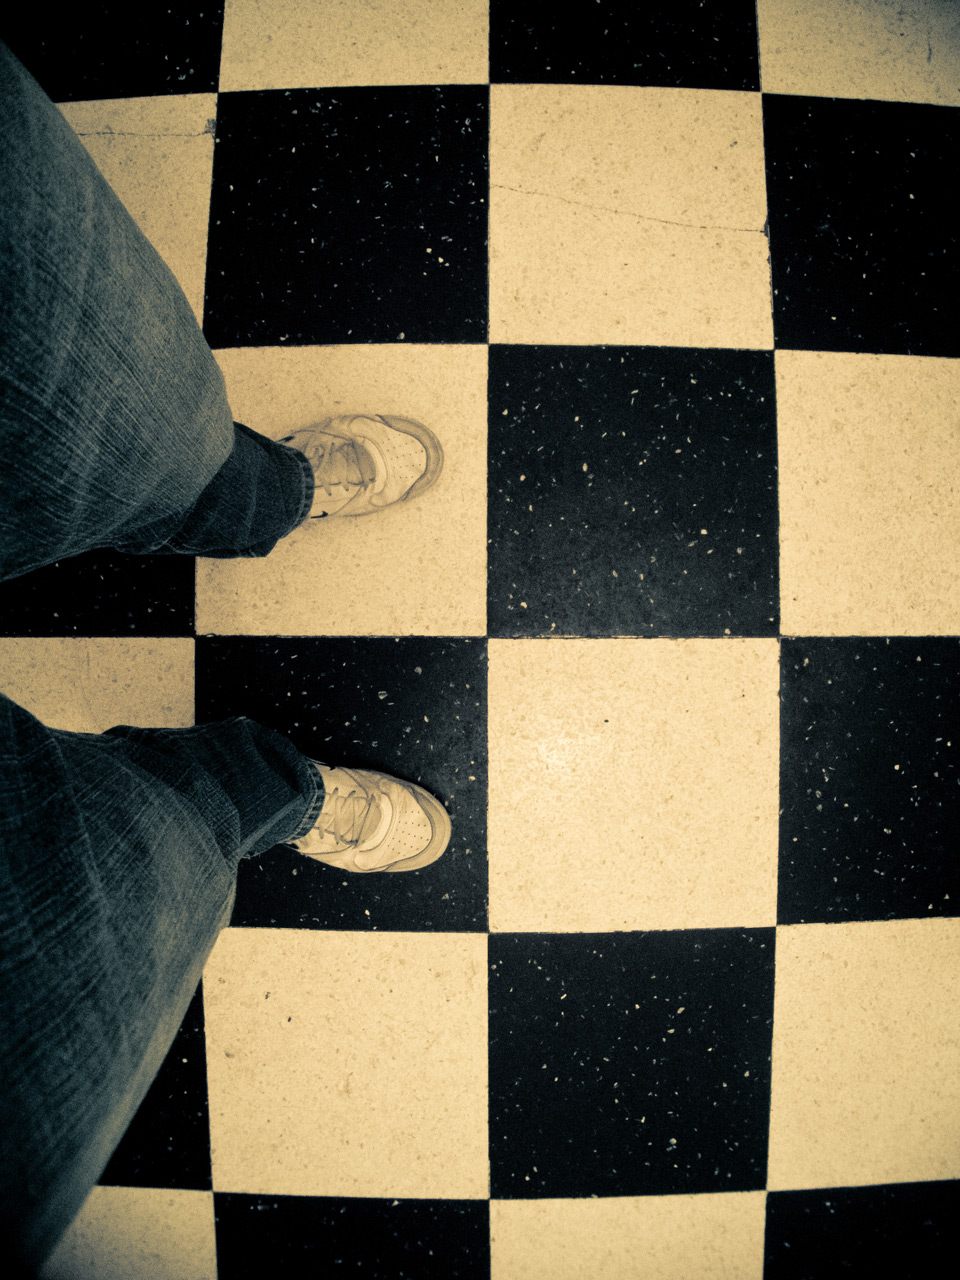 Photo: Stand on your own two feet